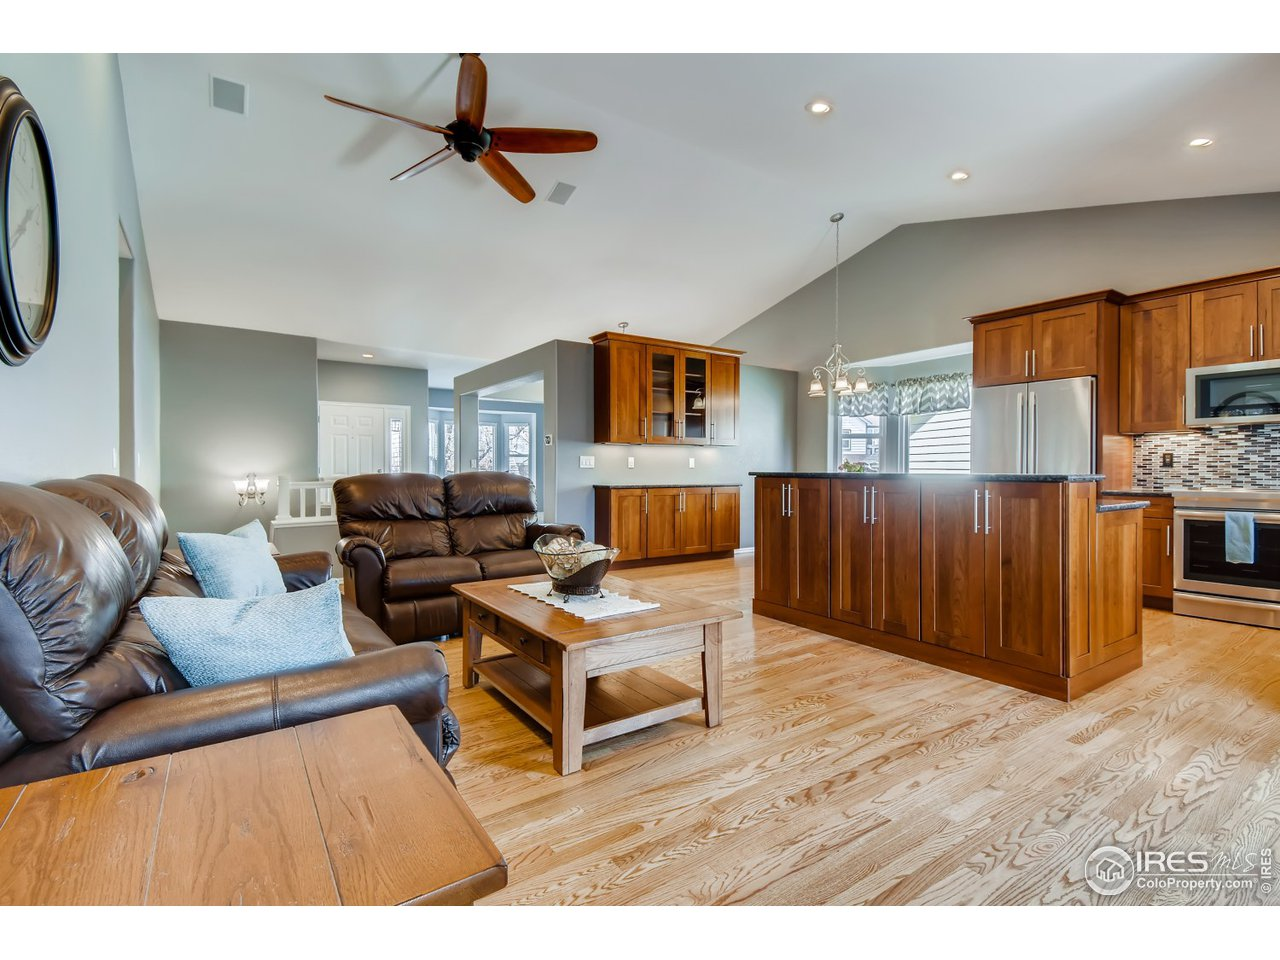 Gorgeous vaulted ceilings and open layout.